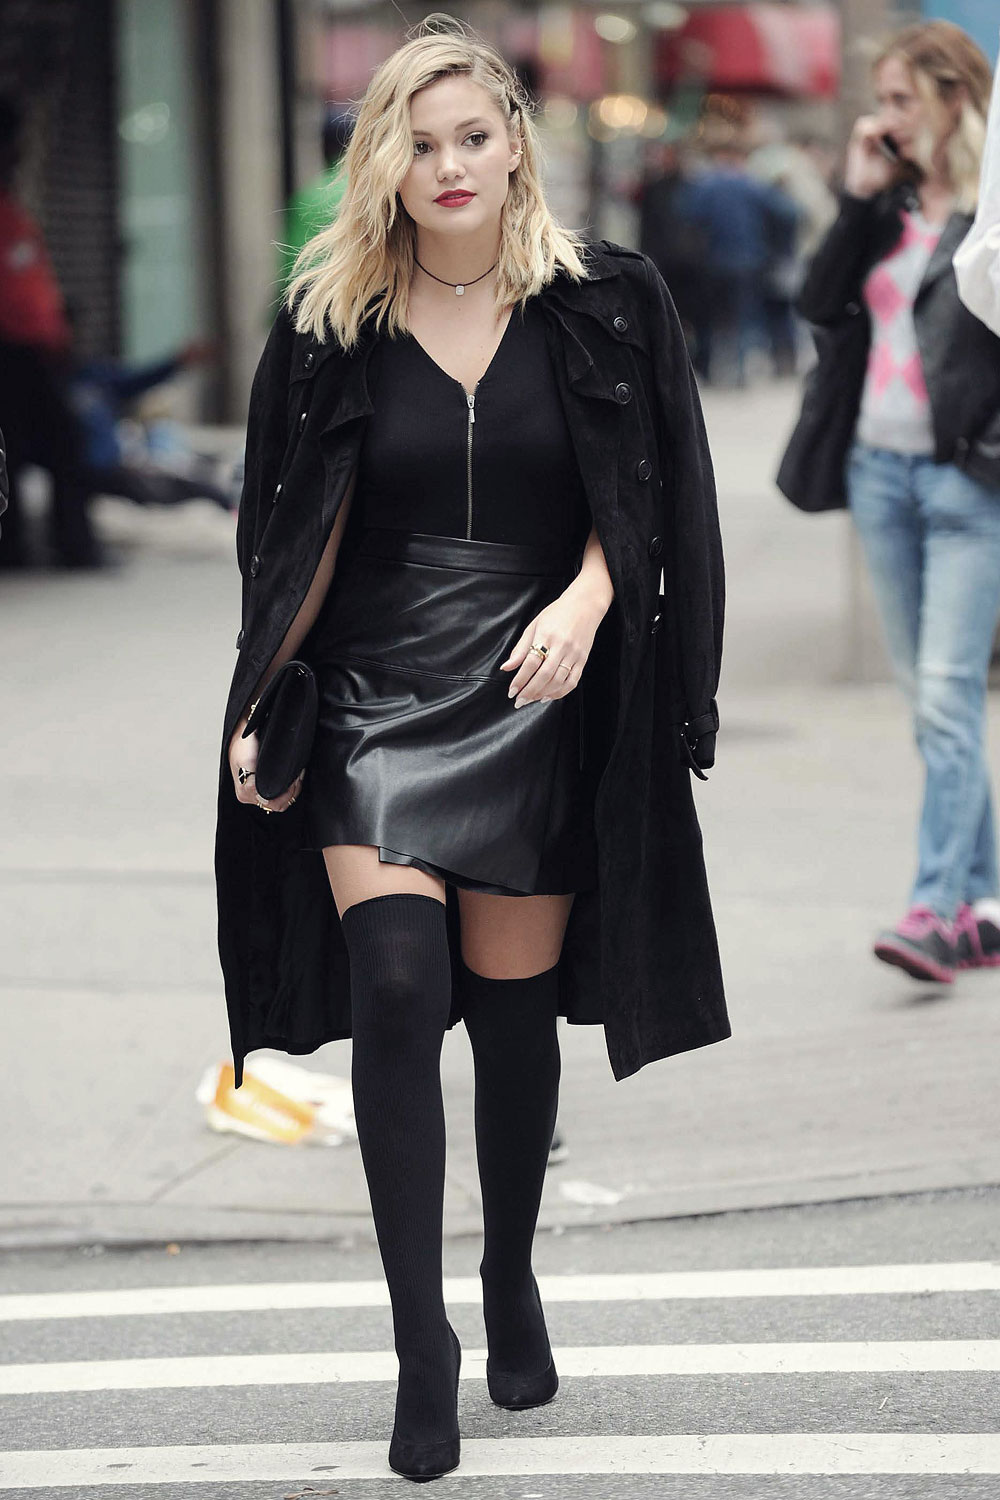 Olivia Holt heading out in NYC